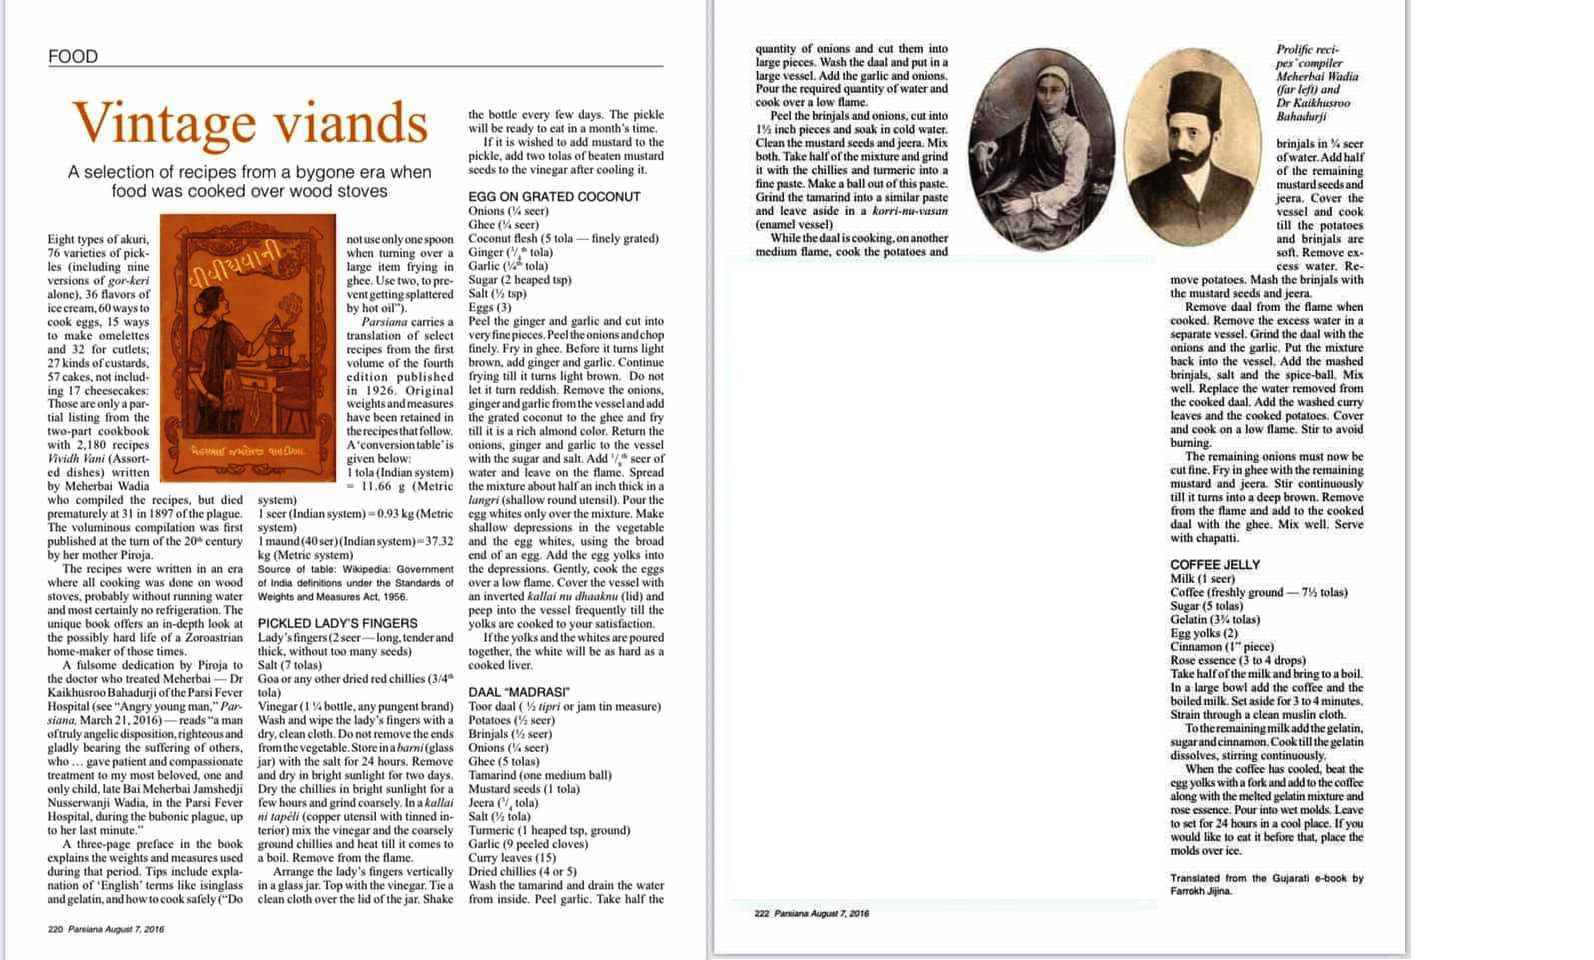 Parsiana August 7, 2016 - A selection of recipes from a bygone era when food was cooked over wood stoves. By Farrokh Jijina.